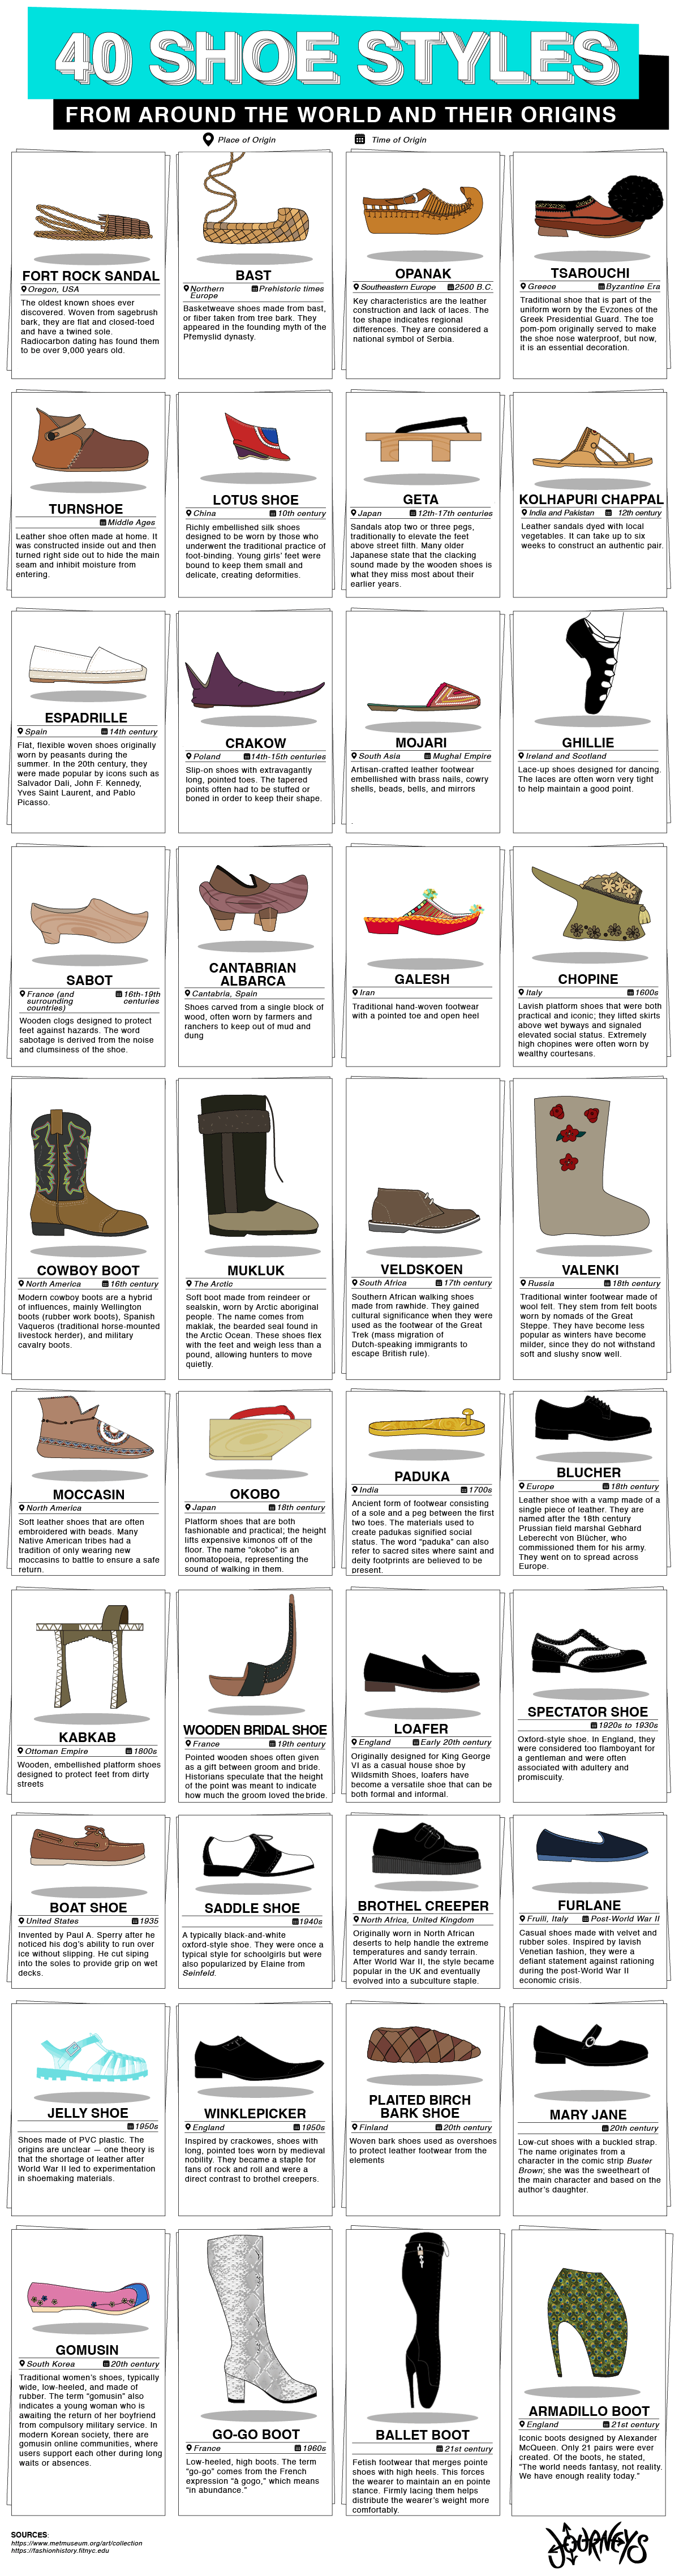 40 Shoes Styles from Around the World and Their Origins